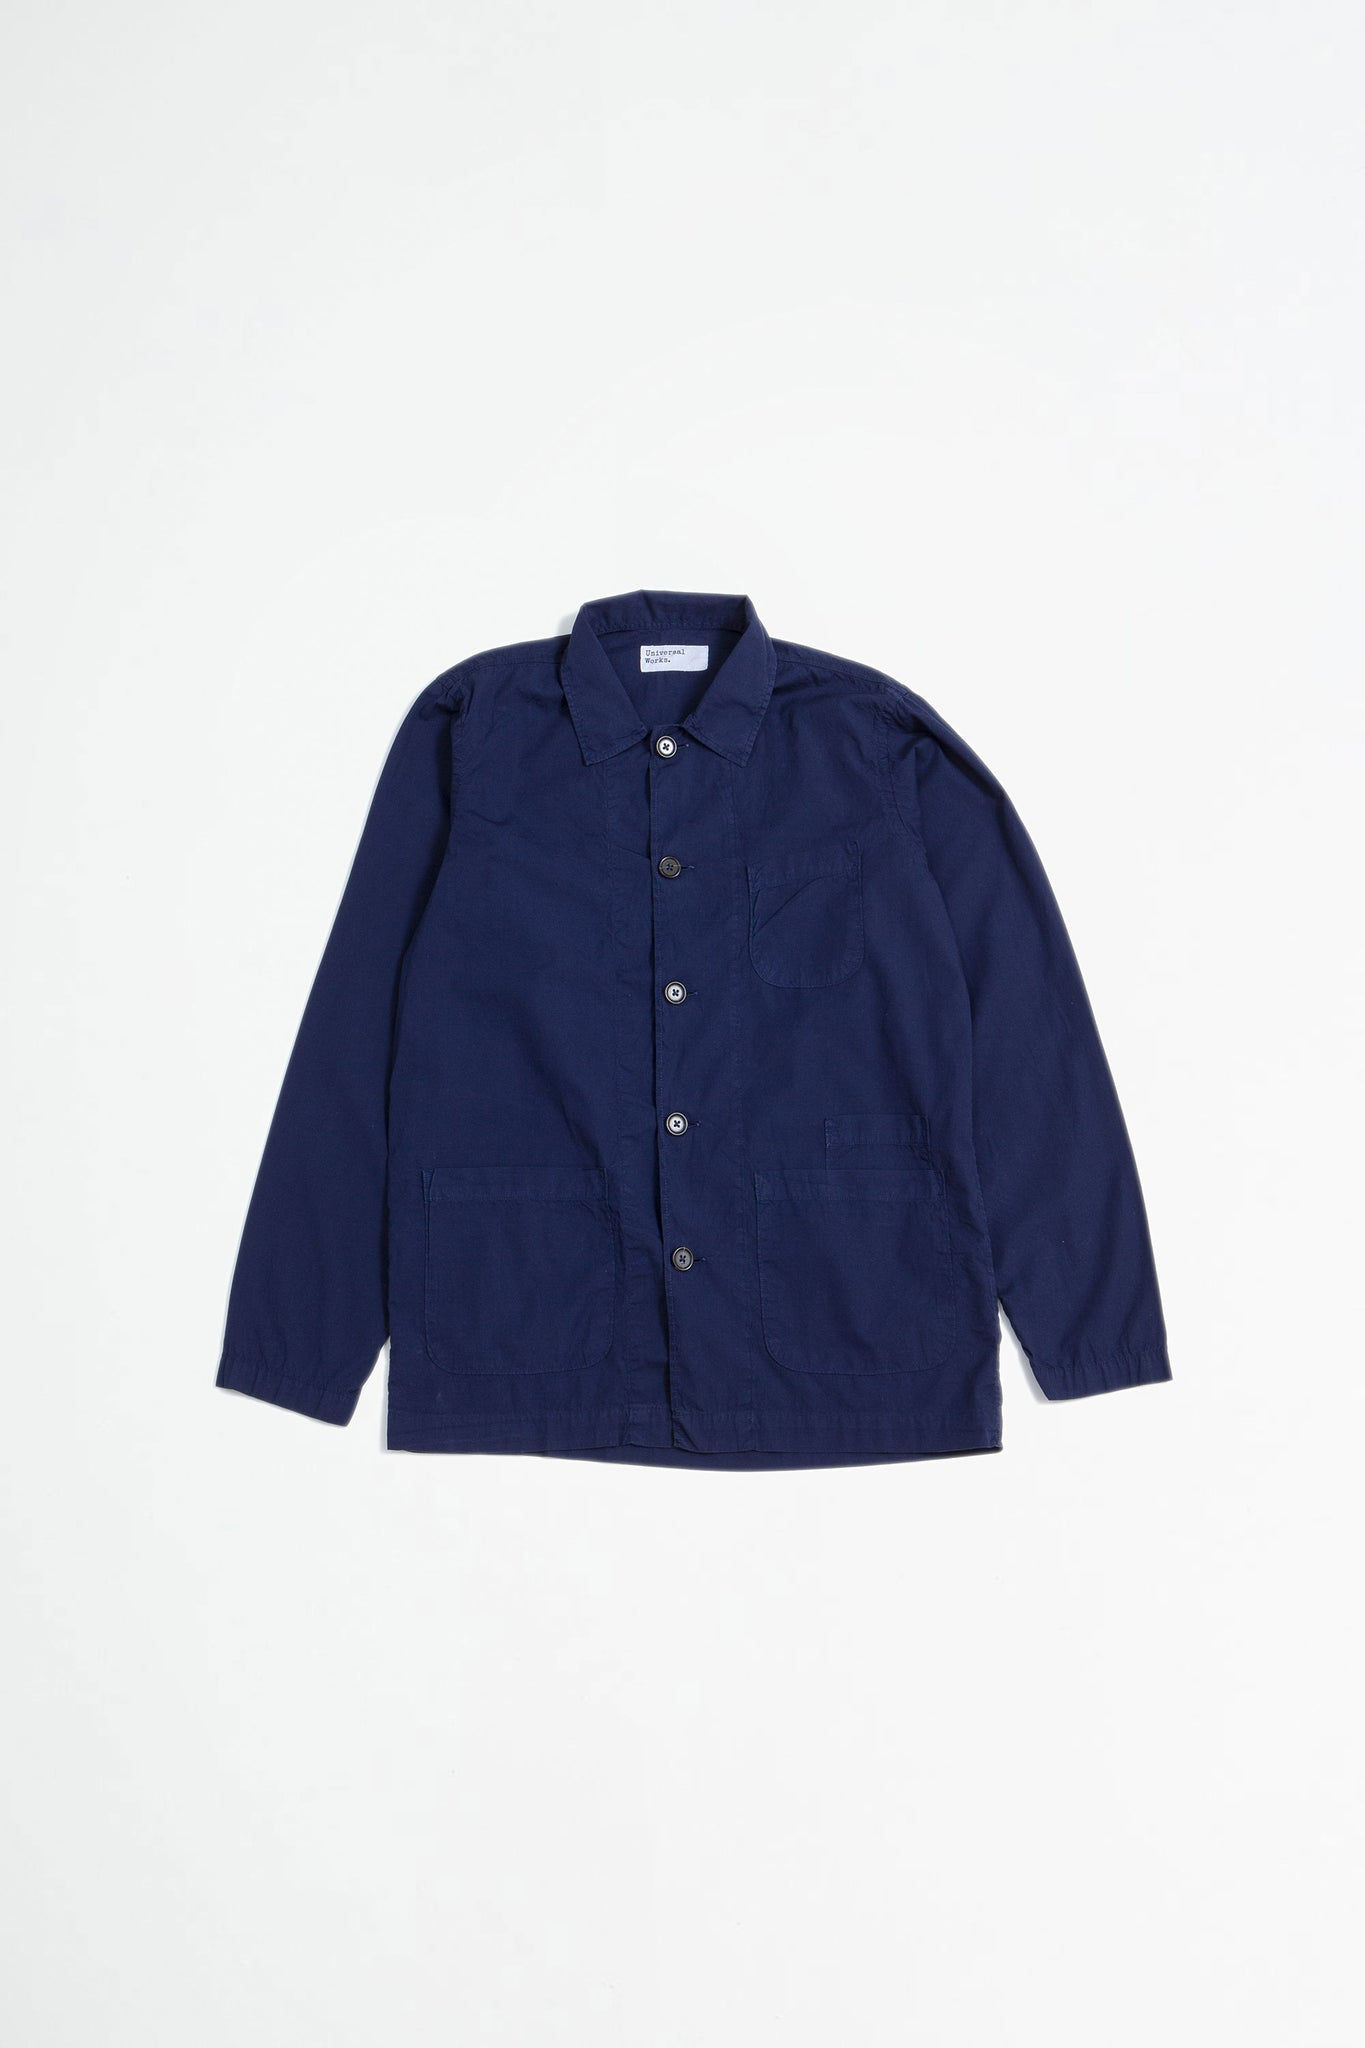 Bakers overshirt blueprint